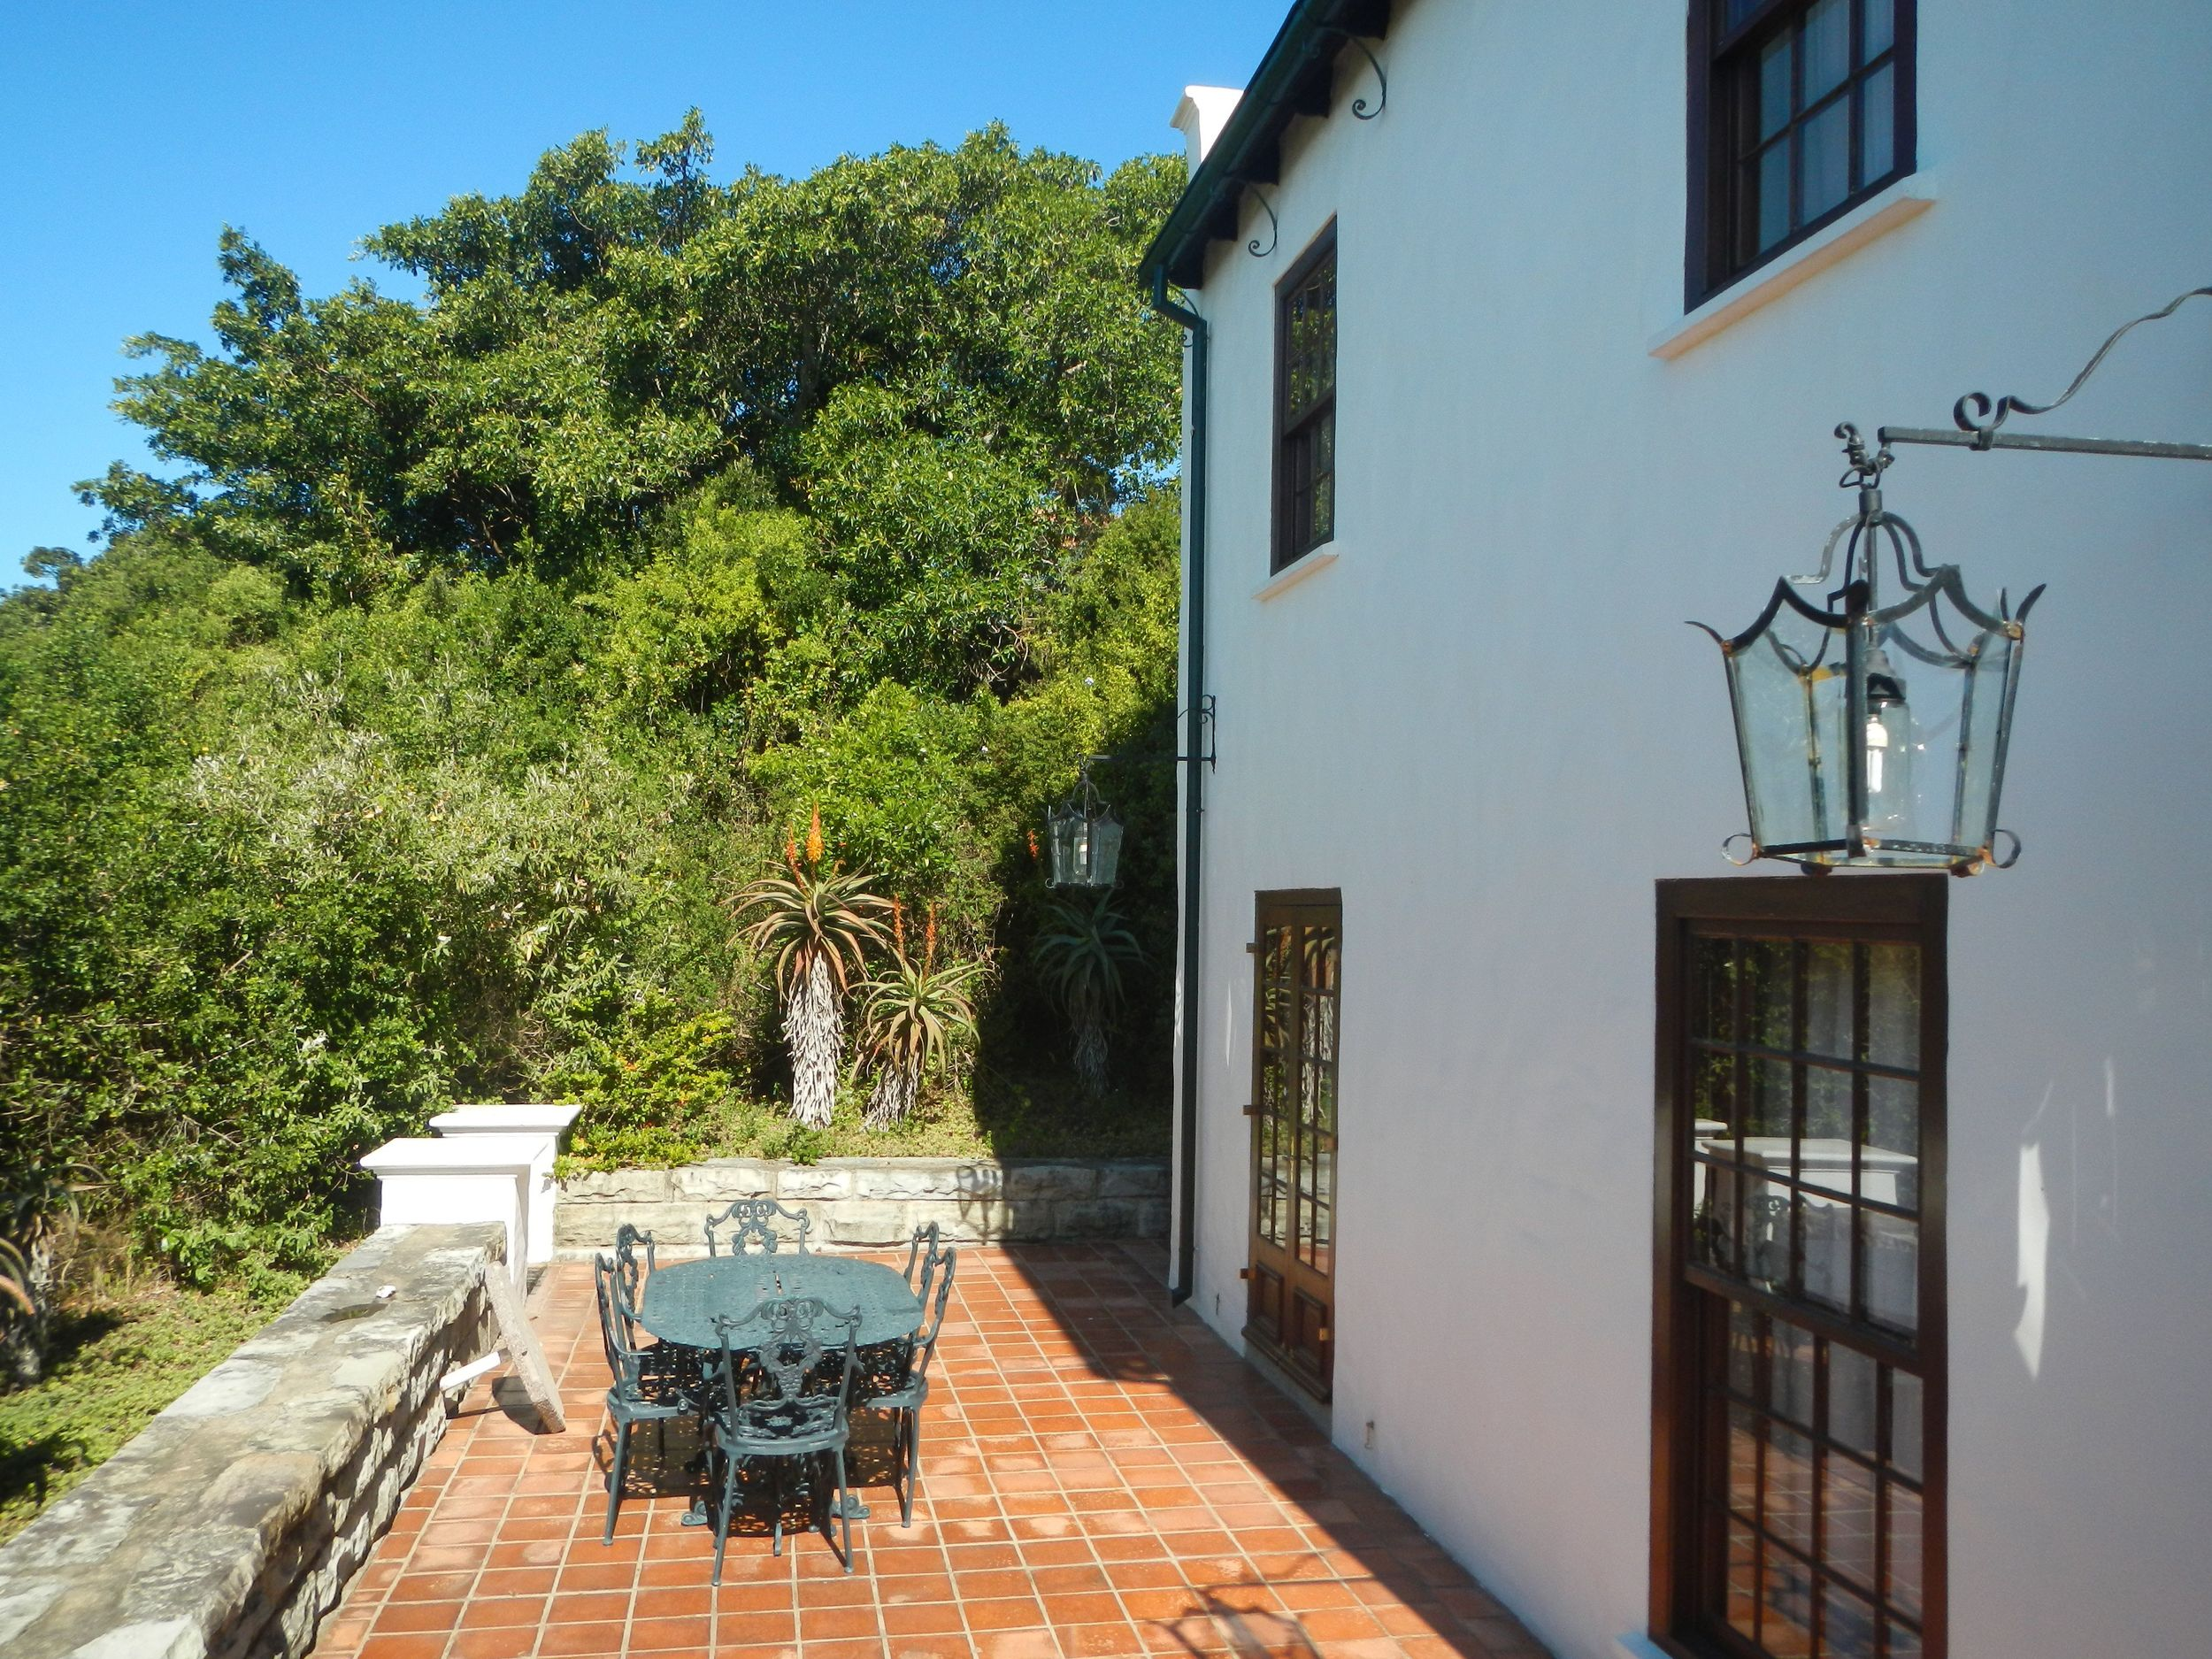 The sheltered verandah is perfect for relaxing outdoors and braais (barbeues)